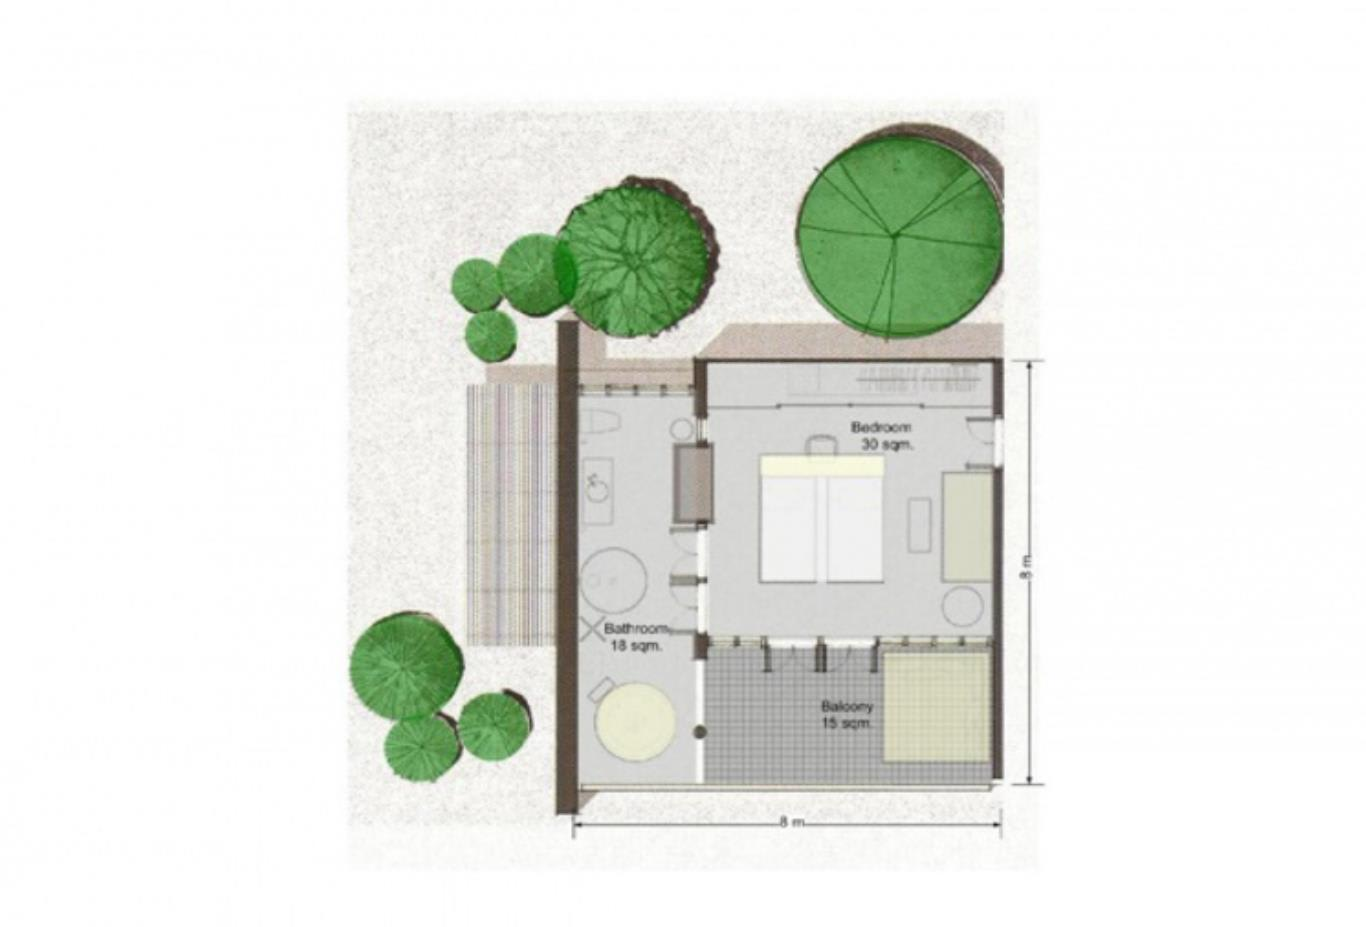 Deluxe Balcony floorplan